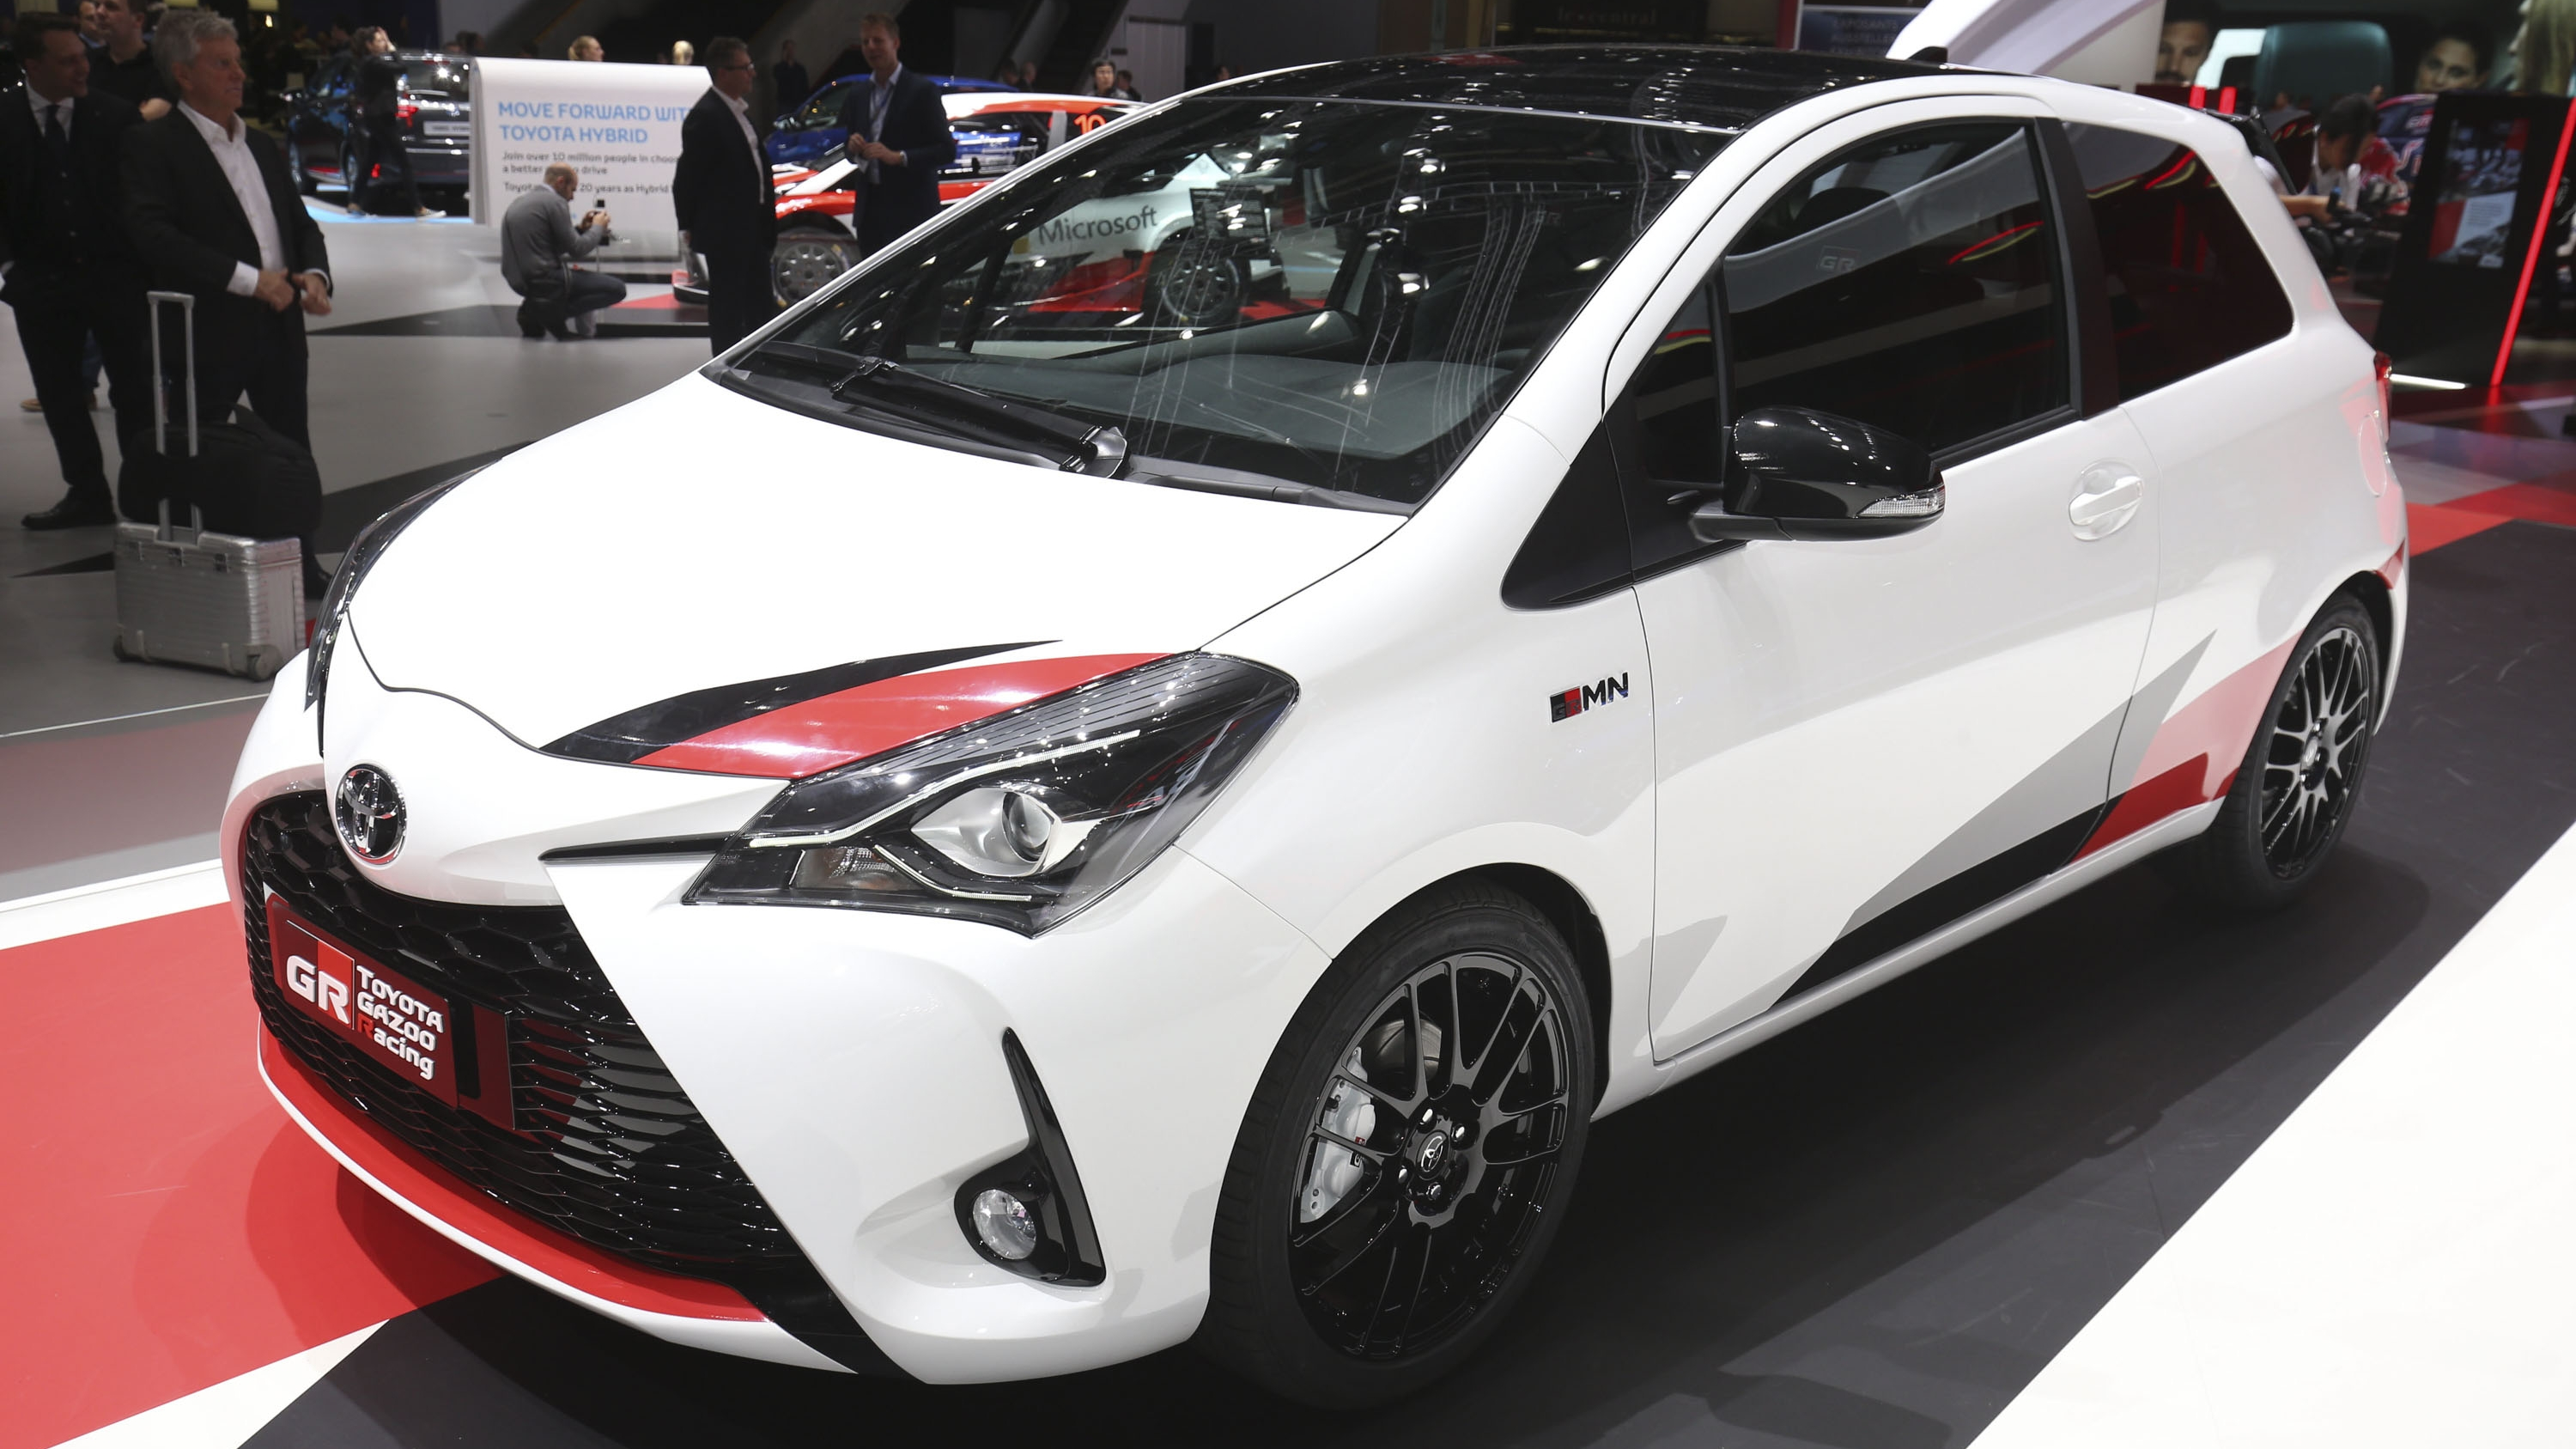 2018 Toyota Yaris GRMN Pictures, Photos, Wallpapers. | Top ...